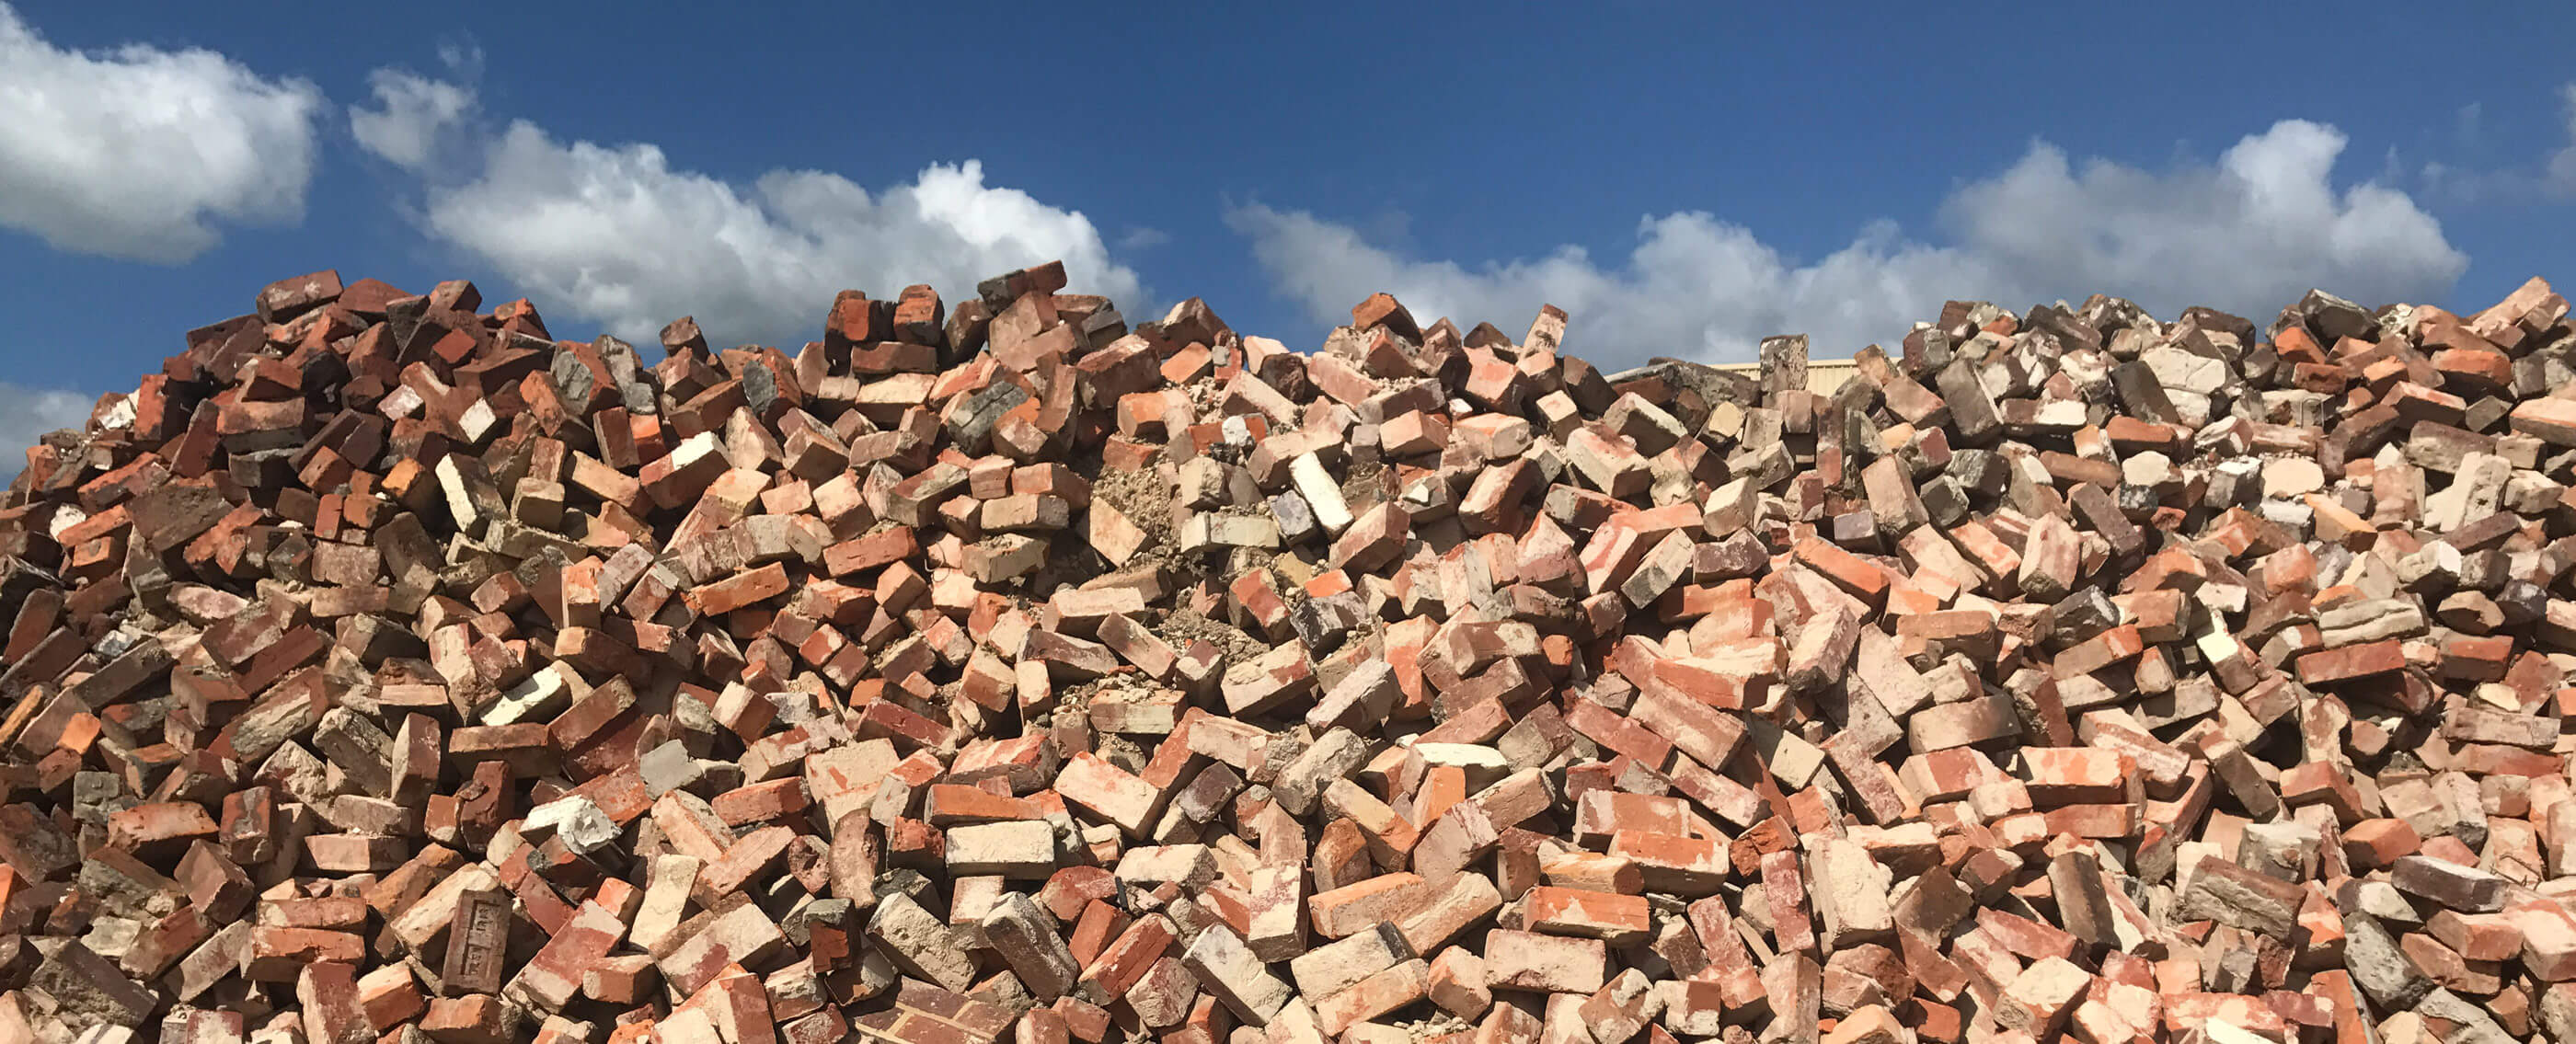 Old red bricks salvaged by Crosby Contractors